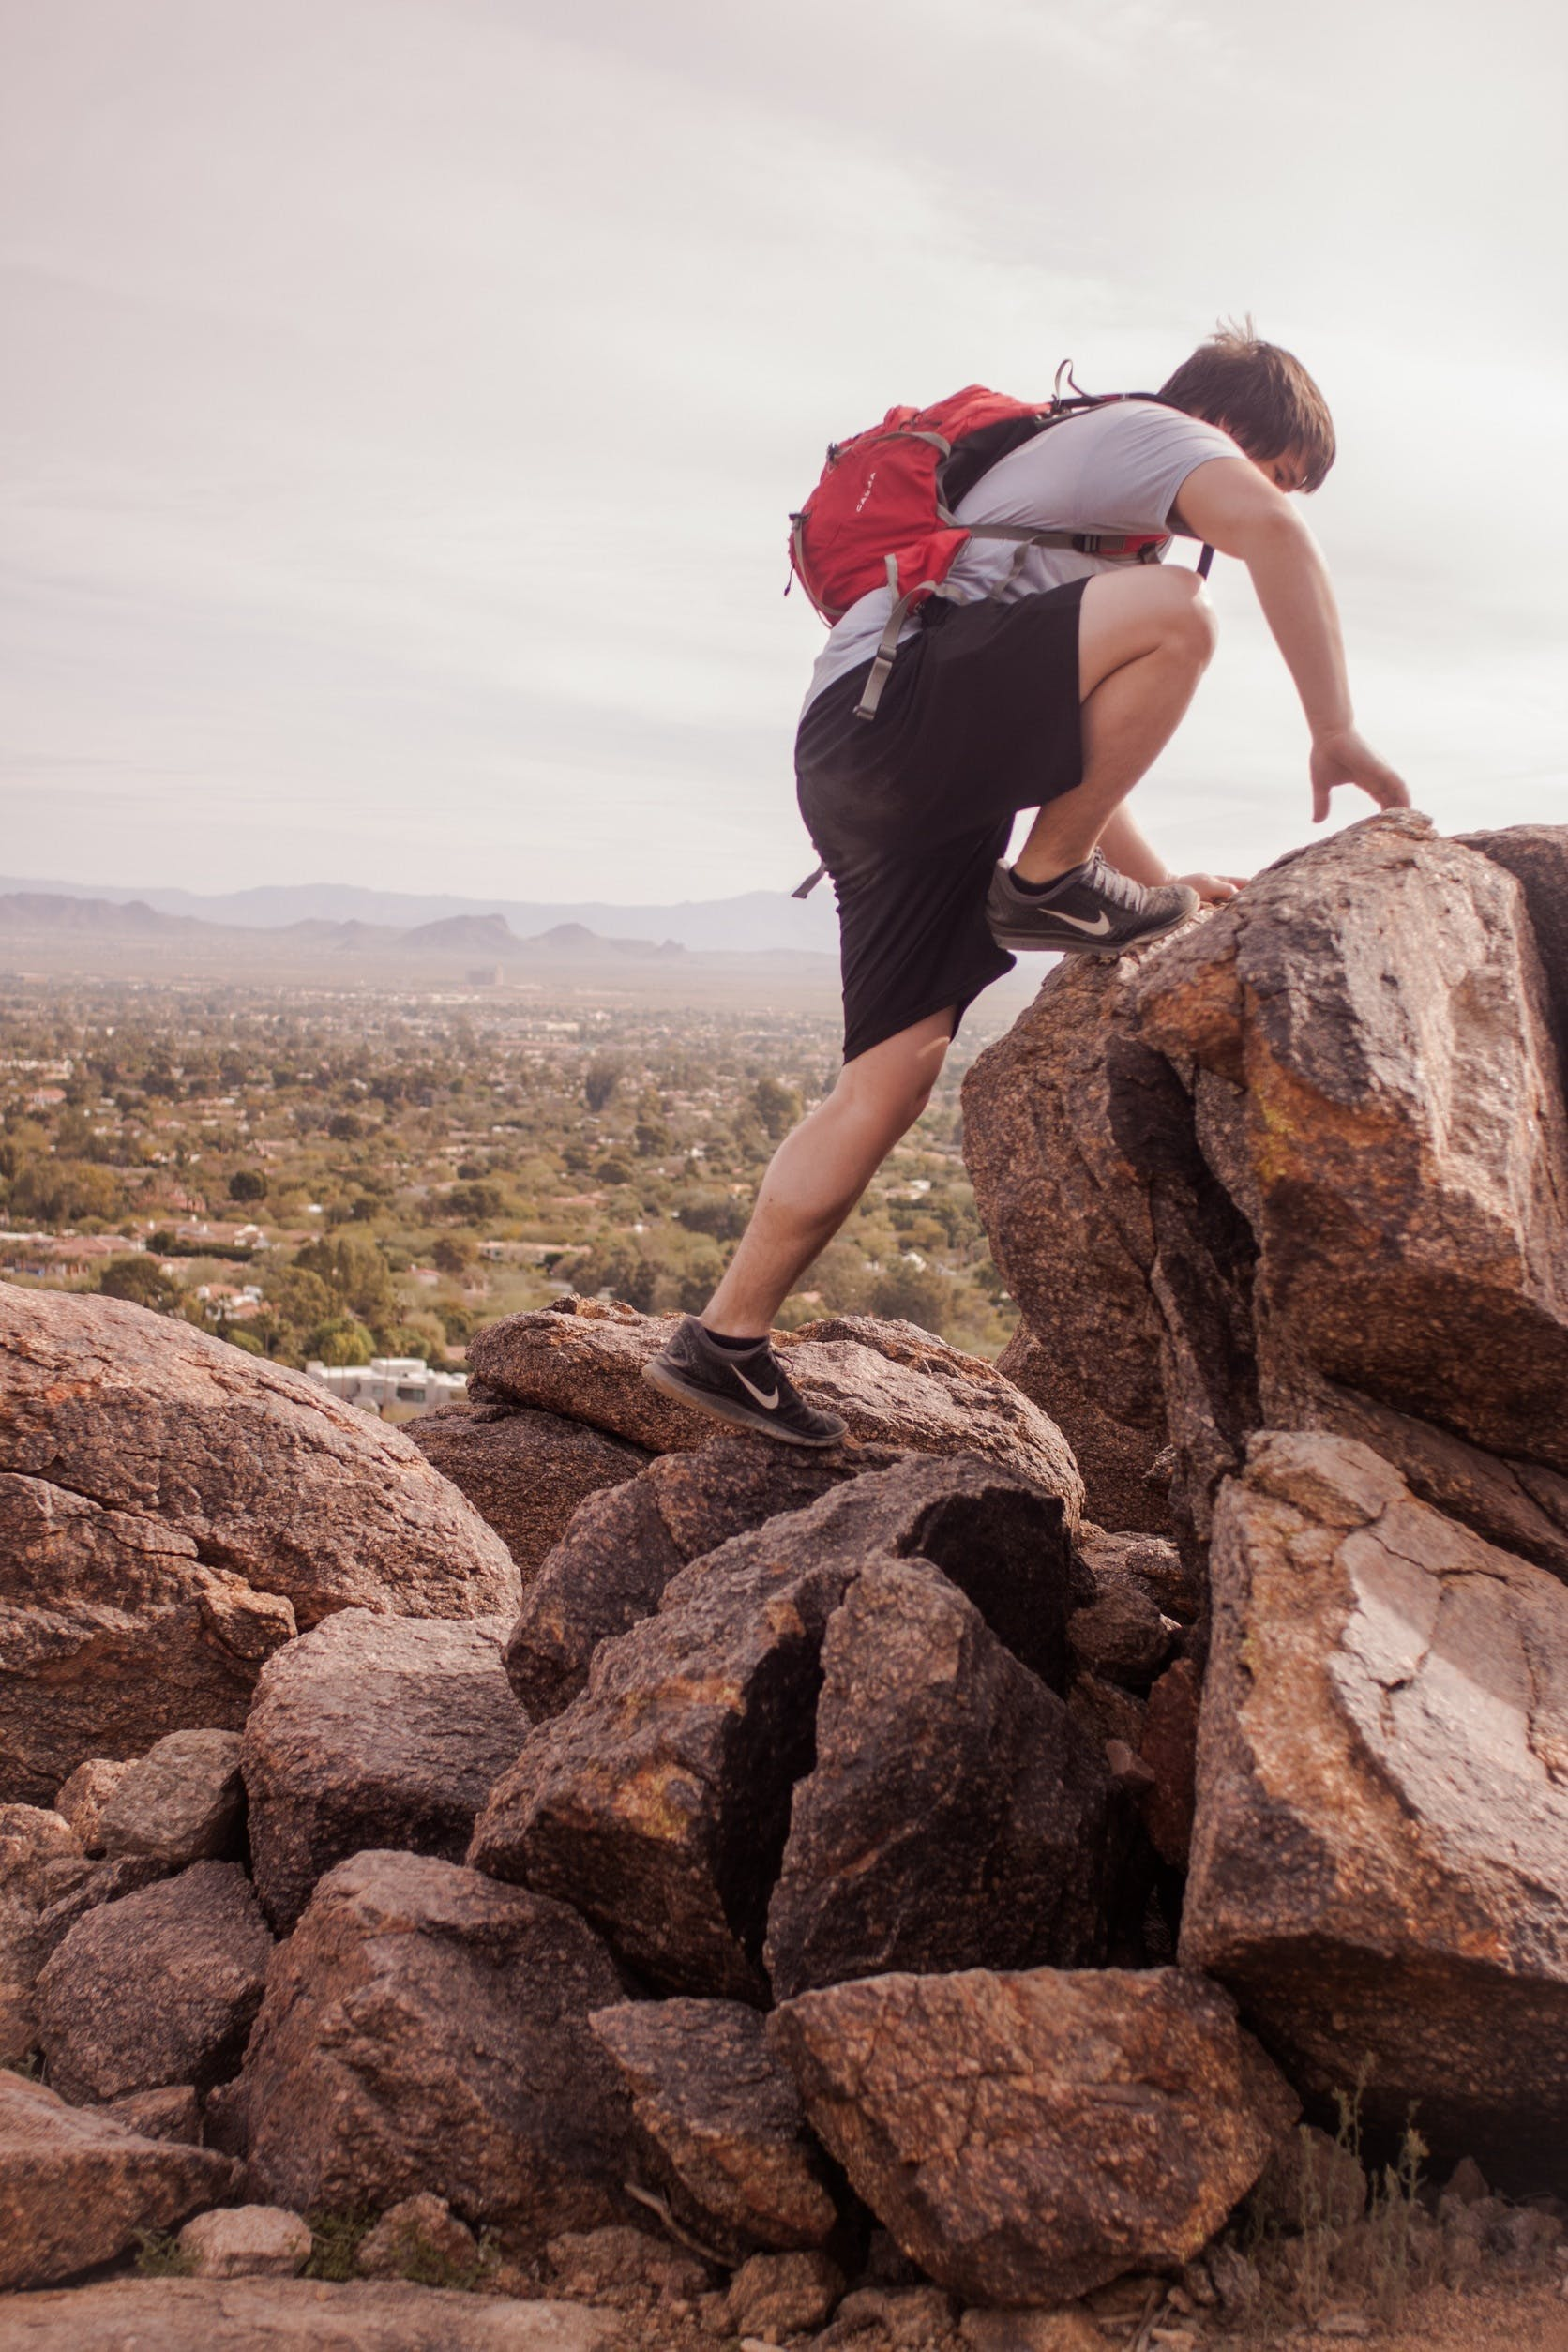 Free stock photo of shorts, people, rocks, hiker